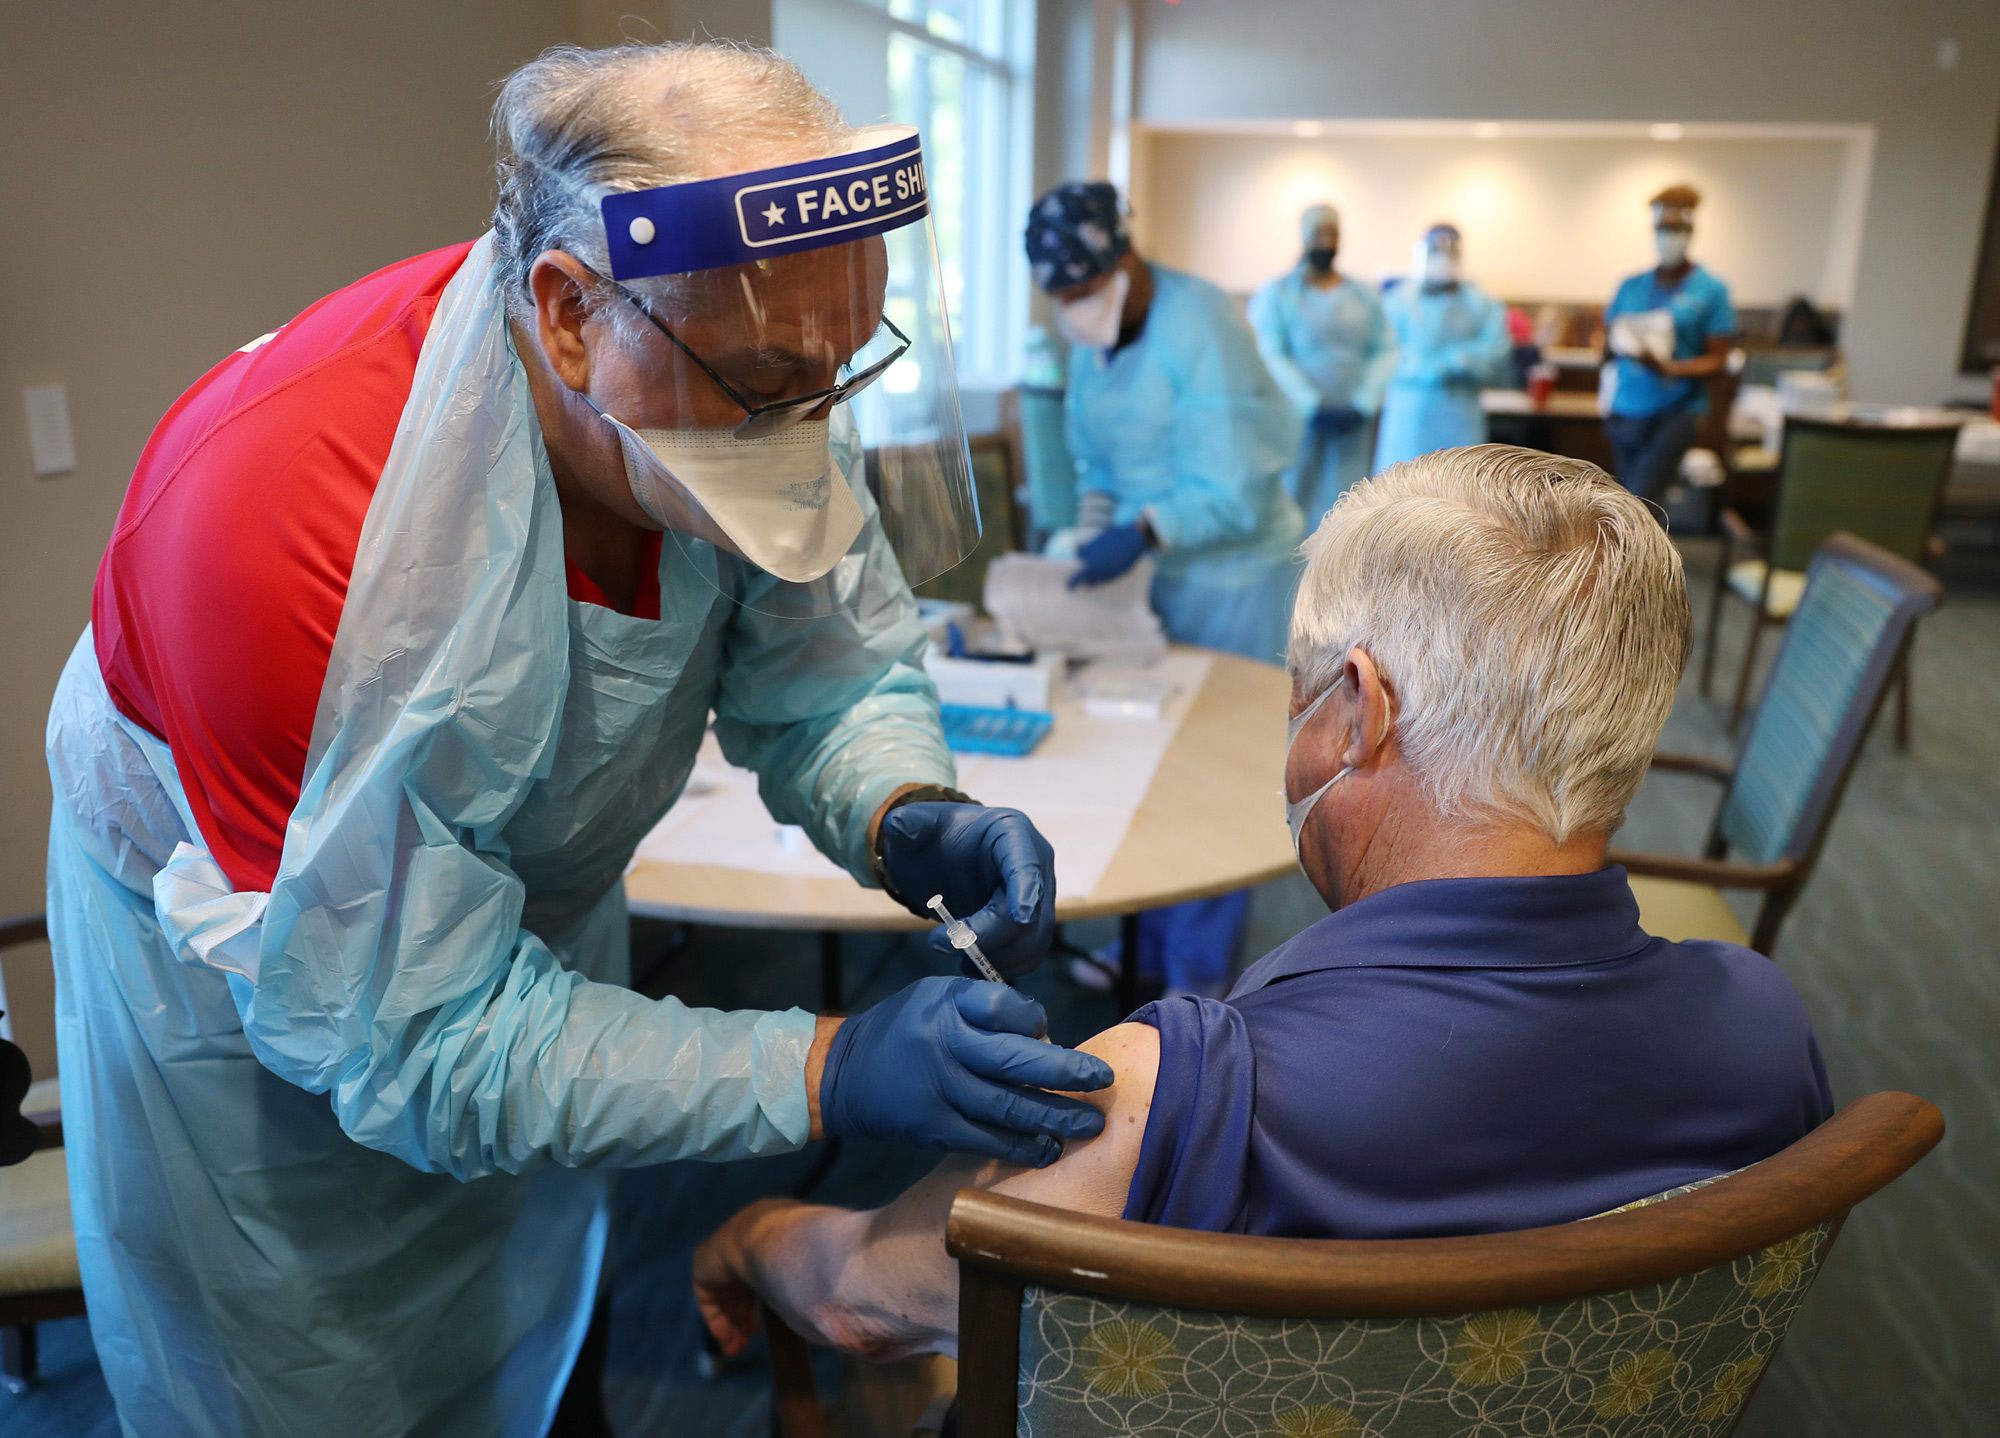 A healthcare worker administers a Pfizer-BioNtech COVID-19 vaccine at the John Knox Village Continuing Care Retirement Community on January 6 in Pompano Beach, Florida.